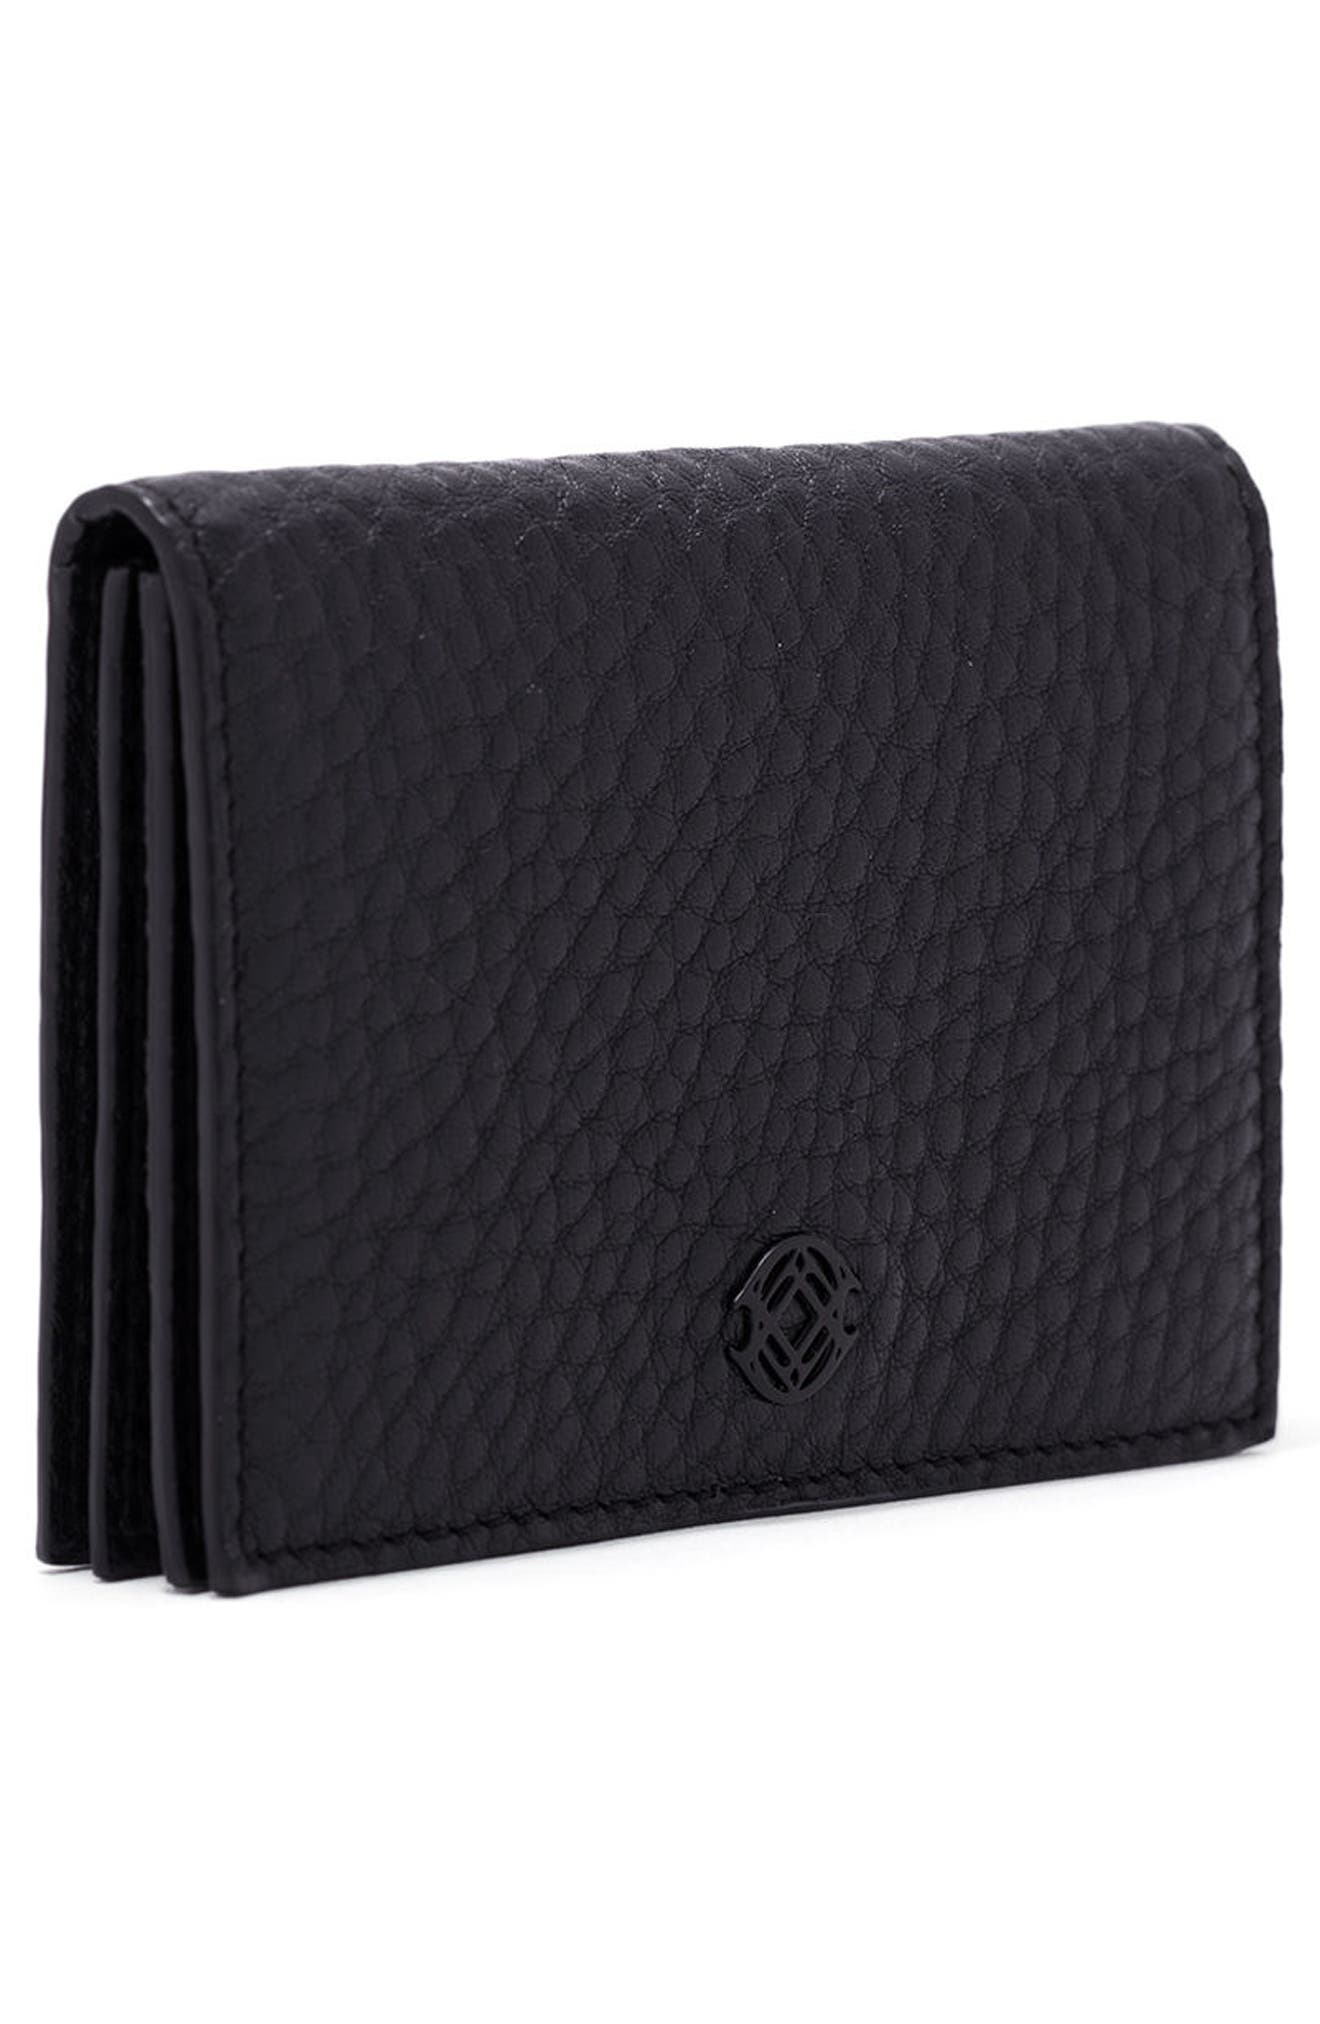 Accordion Leather Card Case,                             Alternate thumbnail 4, color,                             001